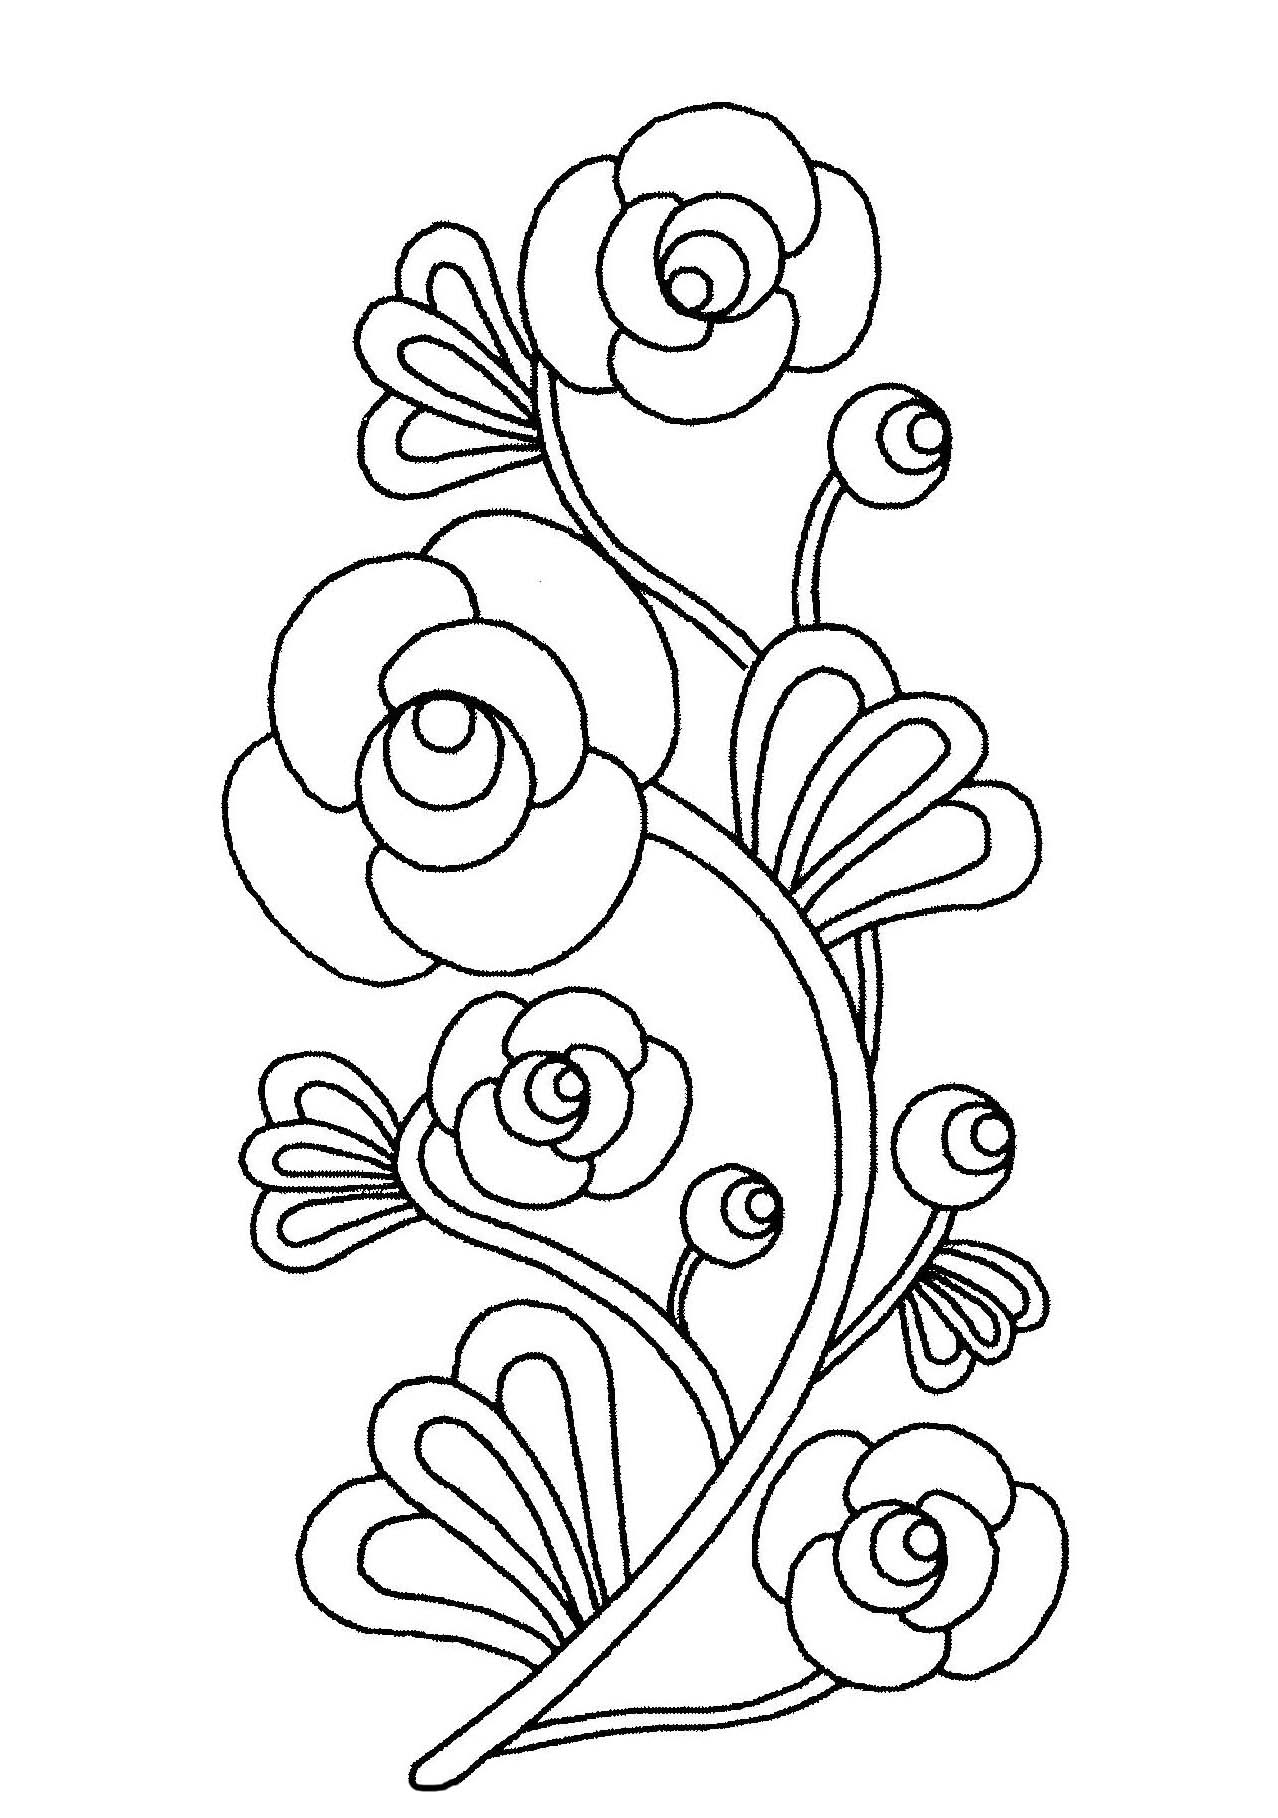 vintage flower coloring pages vintage flowers diverses vintage coloring pages for vintage flower pages coloring